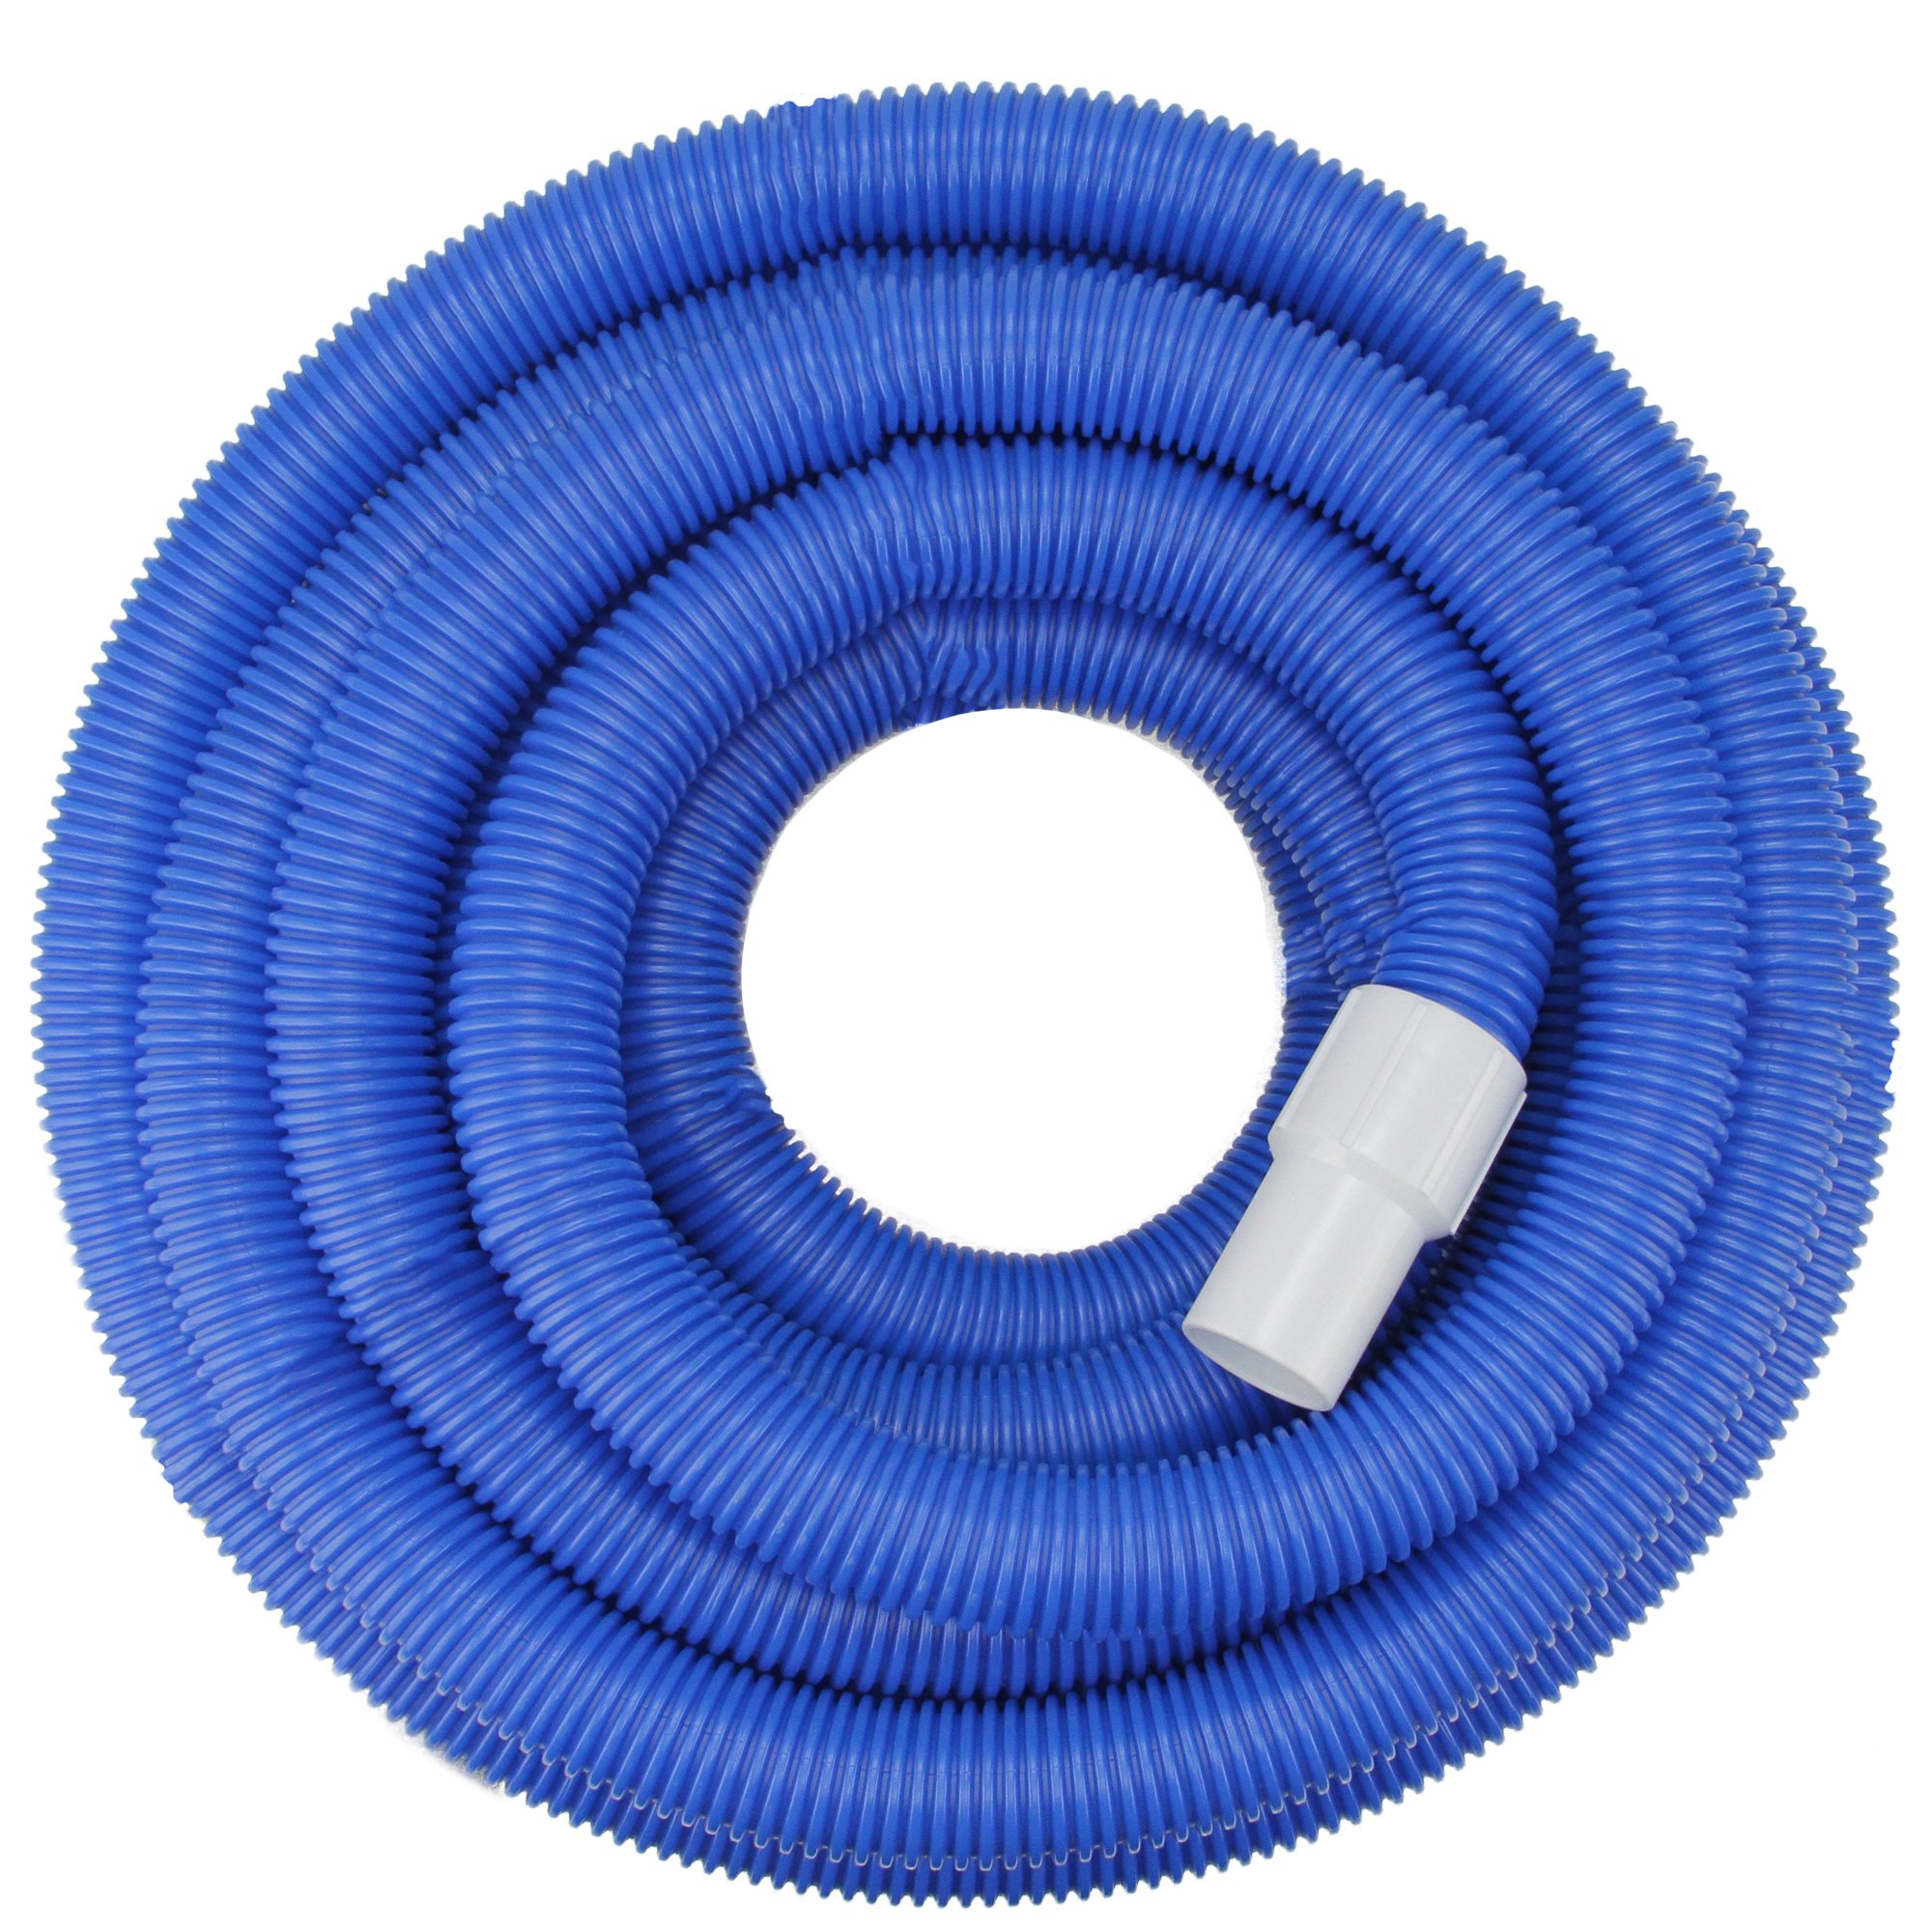 Blue Blow-Molded PE In-Ground Swimming Pool Vacuum Hose with Swivel Cuff - 100' x 1.5''